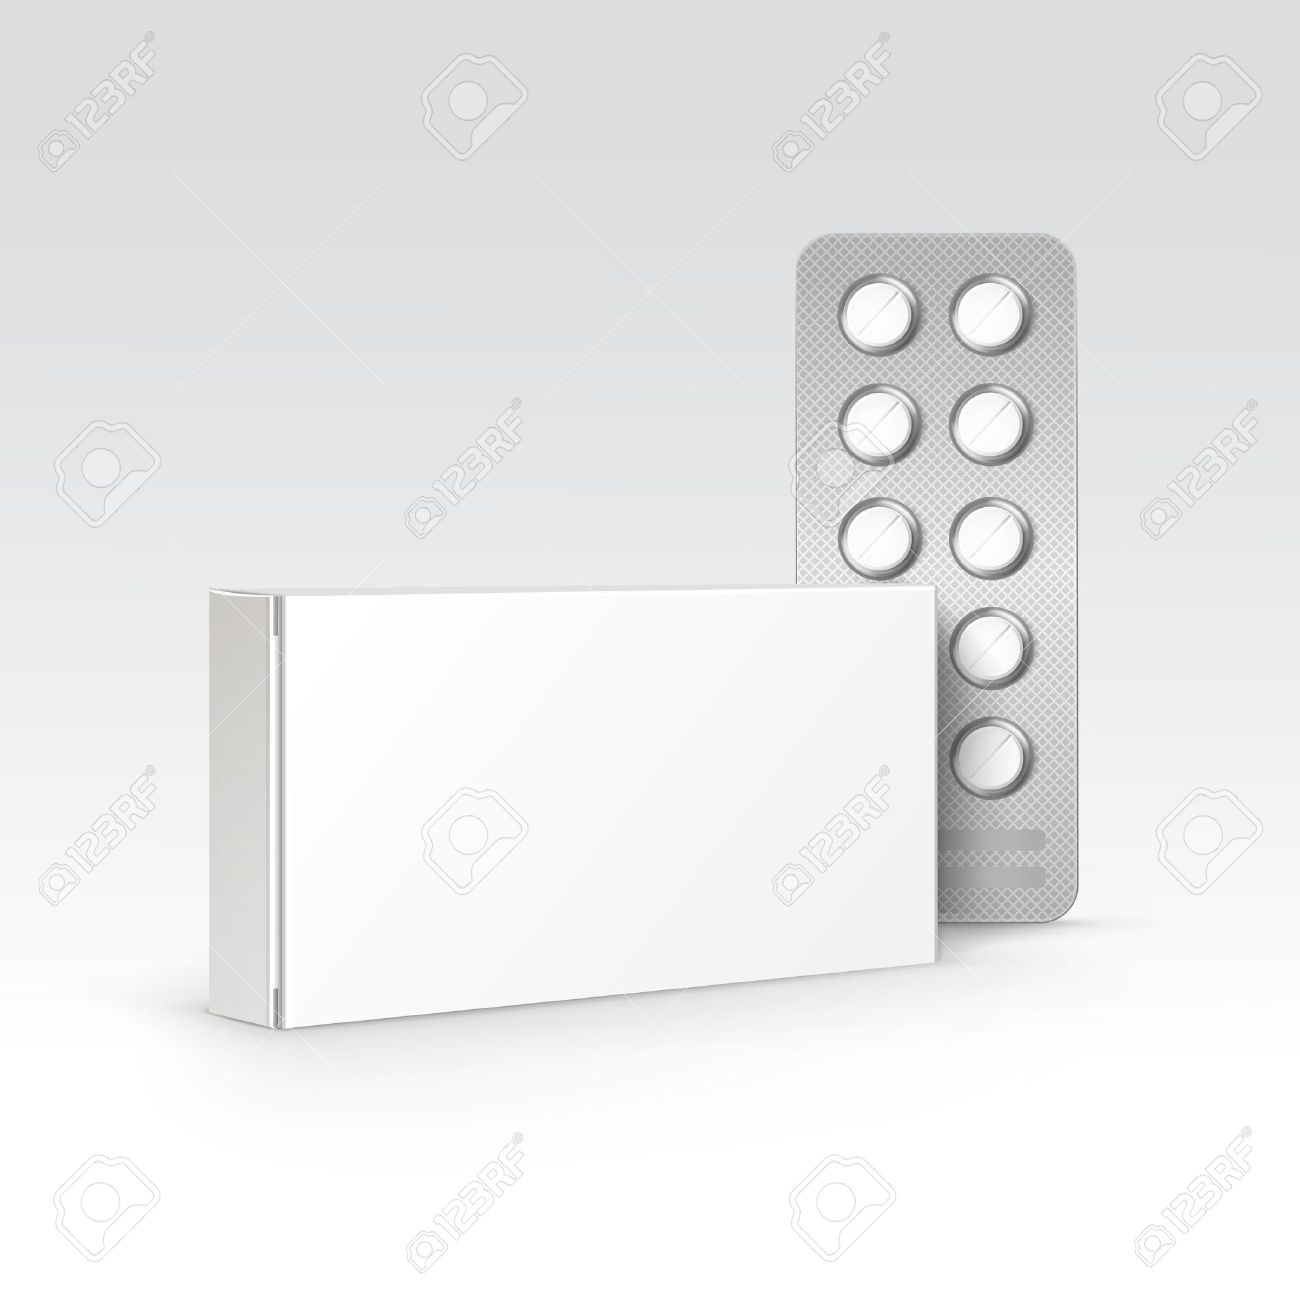 Vector Blank White Package Box for Blister of Pills Isolated on Background - 39647205